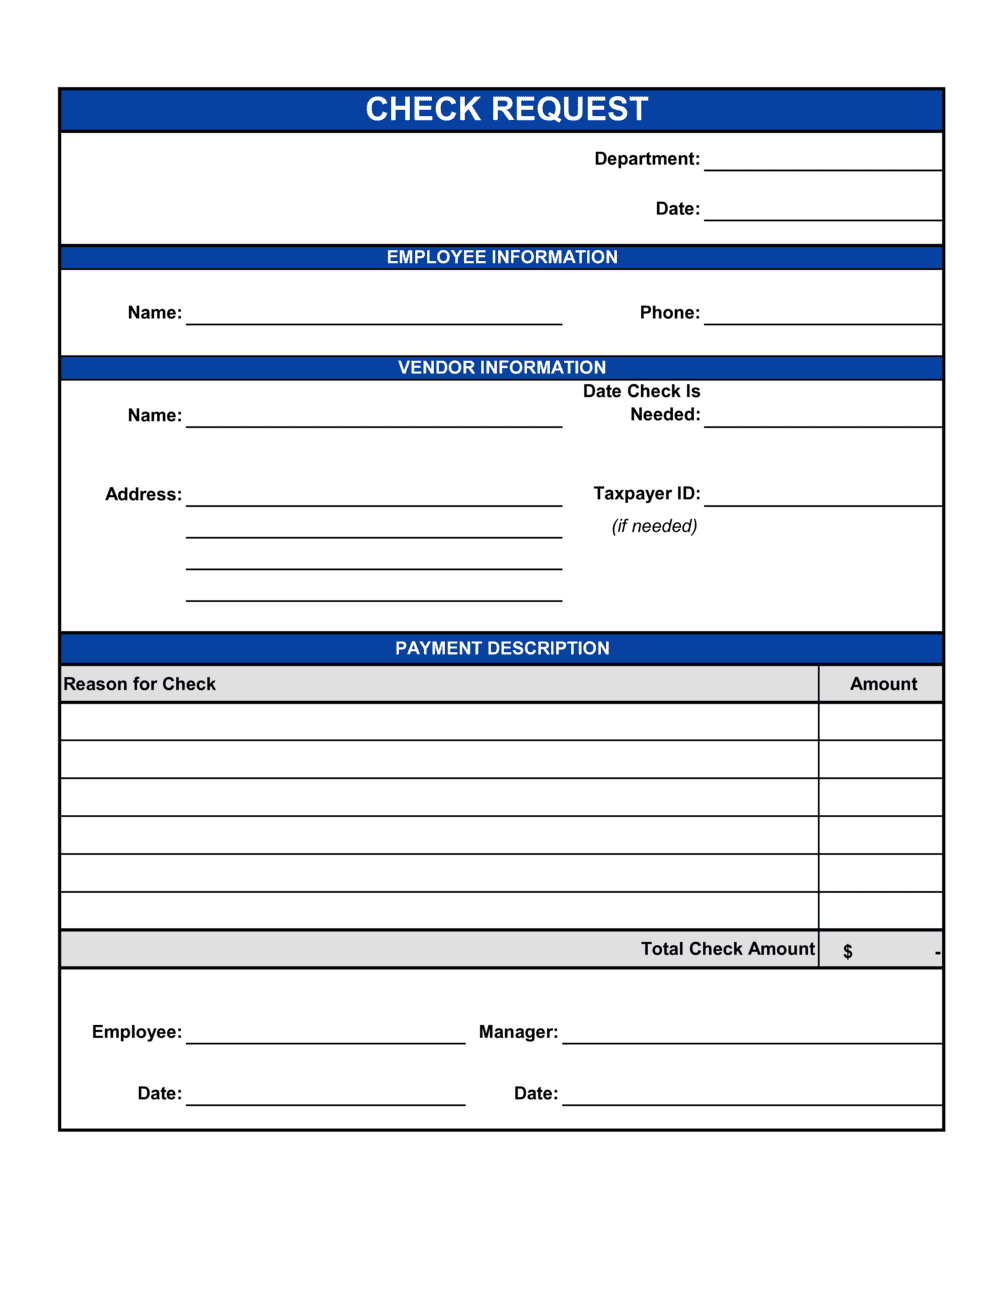 Business-in-a-Box's Check Request Form Template